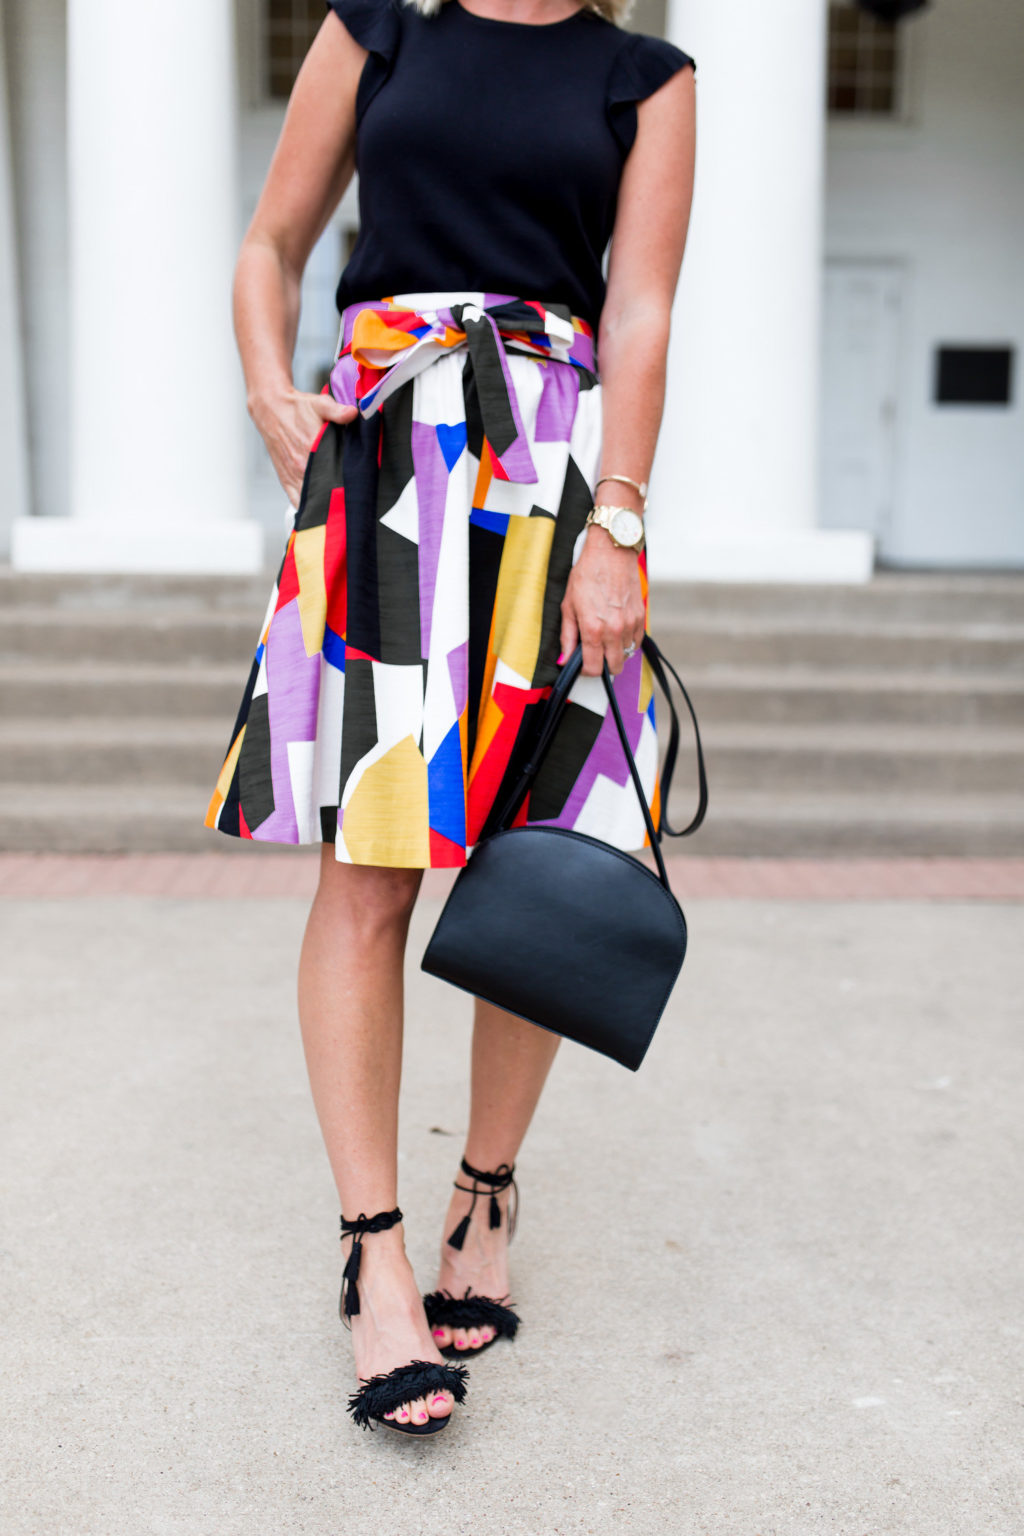 nordstrom workwear style graphic skirt